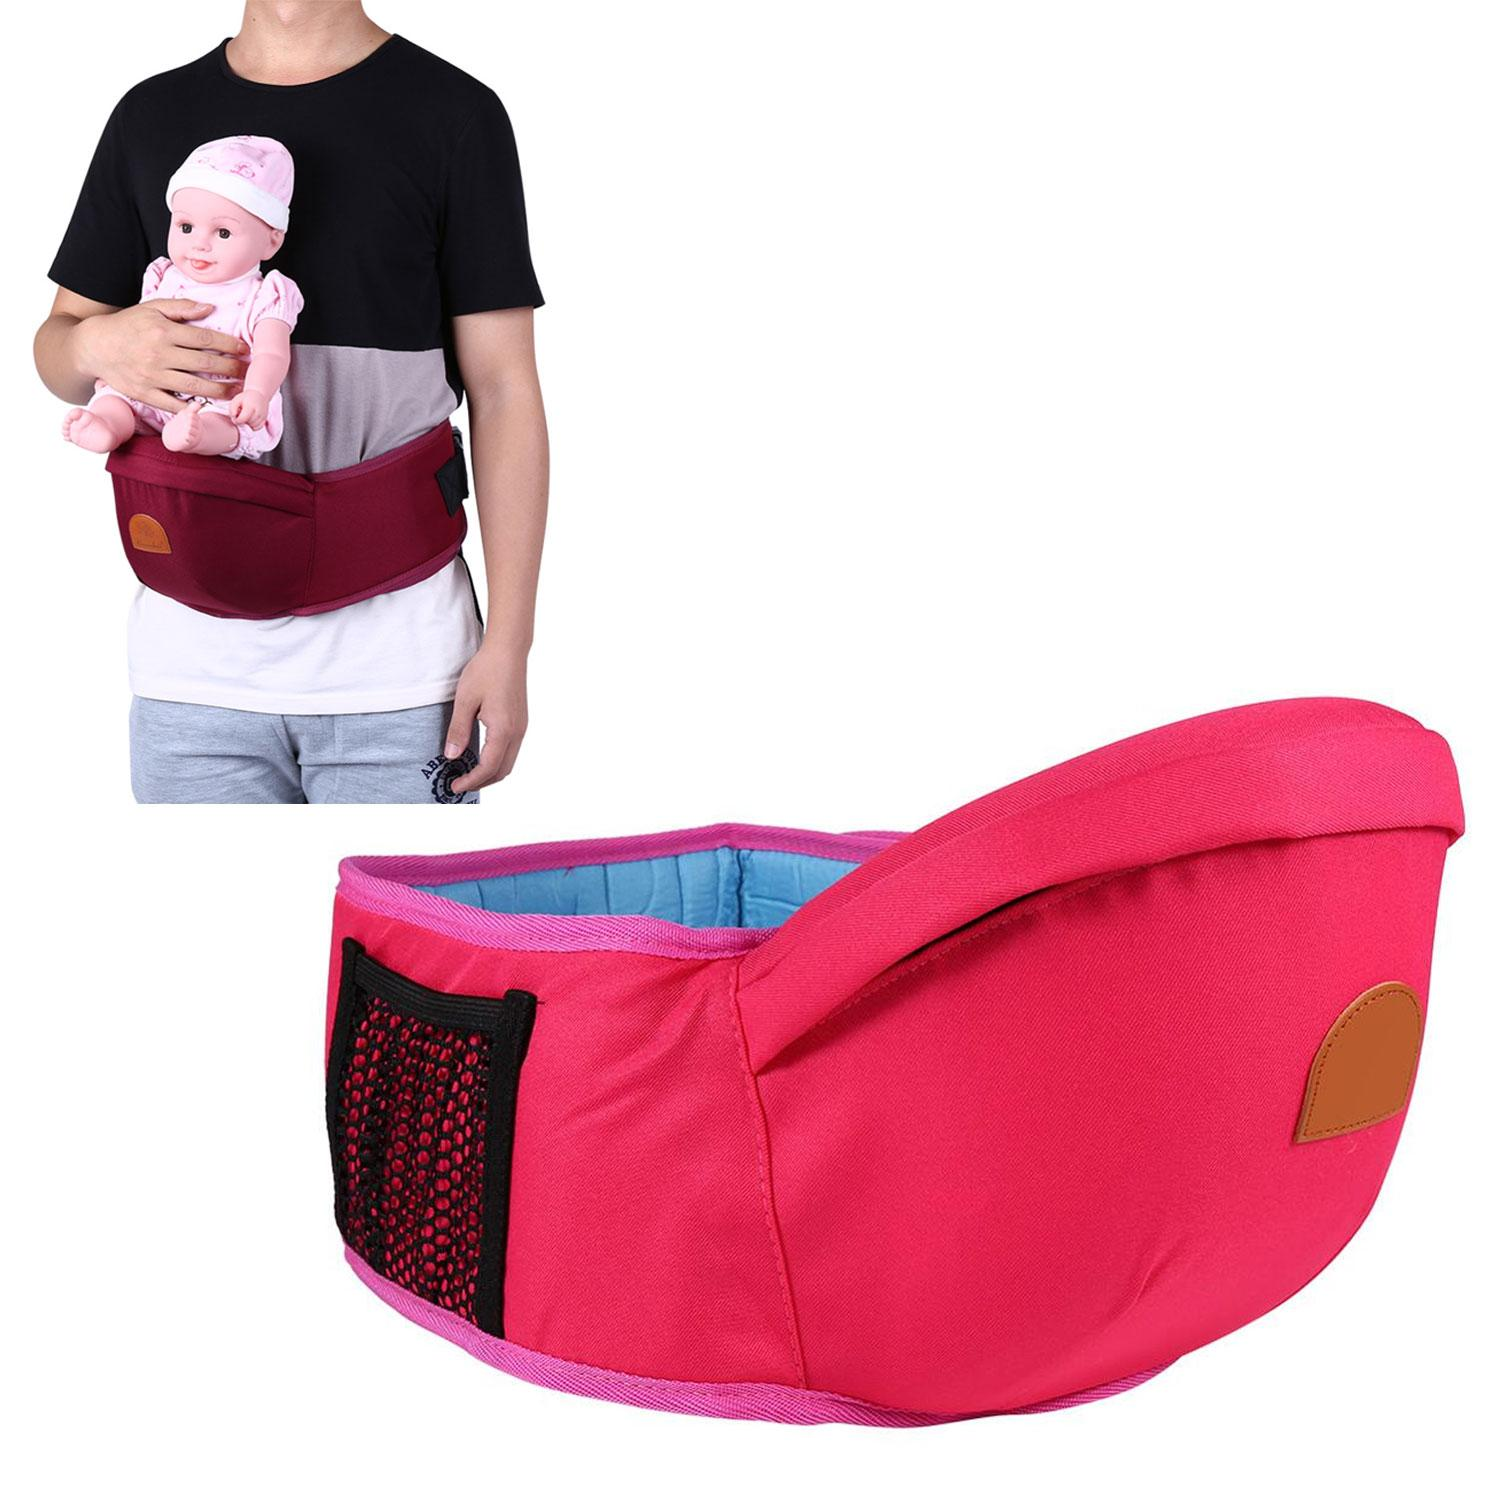 Baby Carrier For Sale Wrap Online Brands Prices Moby Original Catton Hold Waist Belt Hip Seat Chair